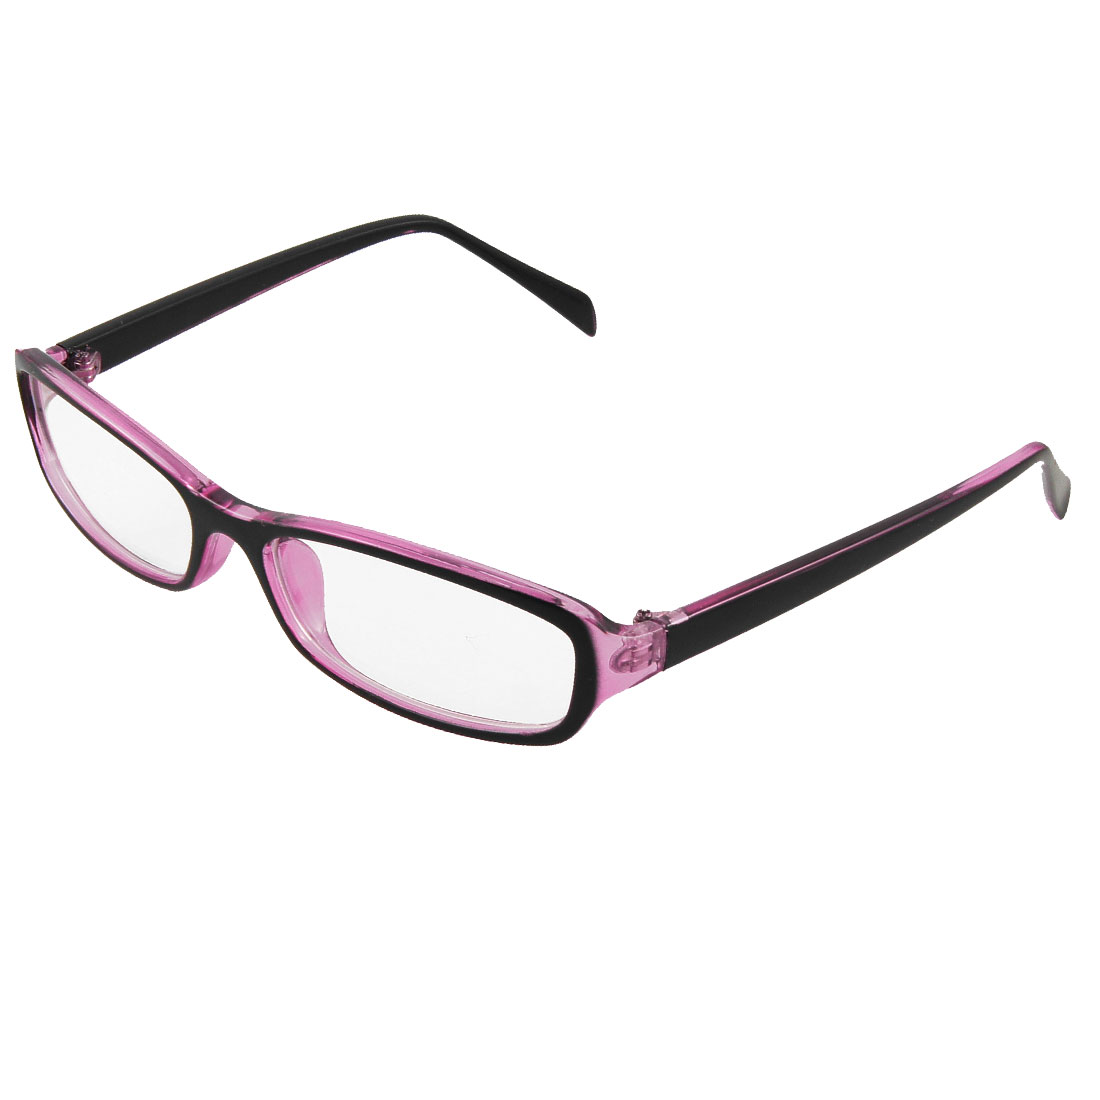 Lady Black Clear Purple Plastic Arms Multi Coated Lens Plain Glasses